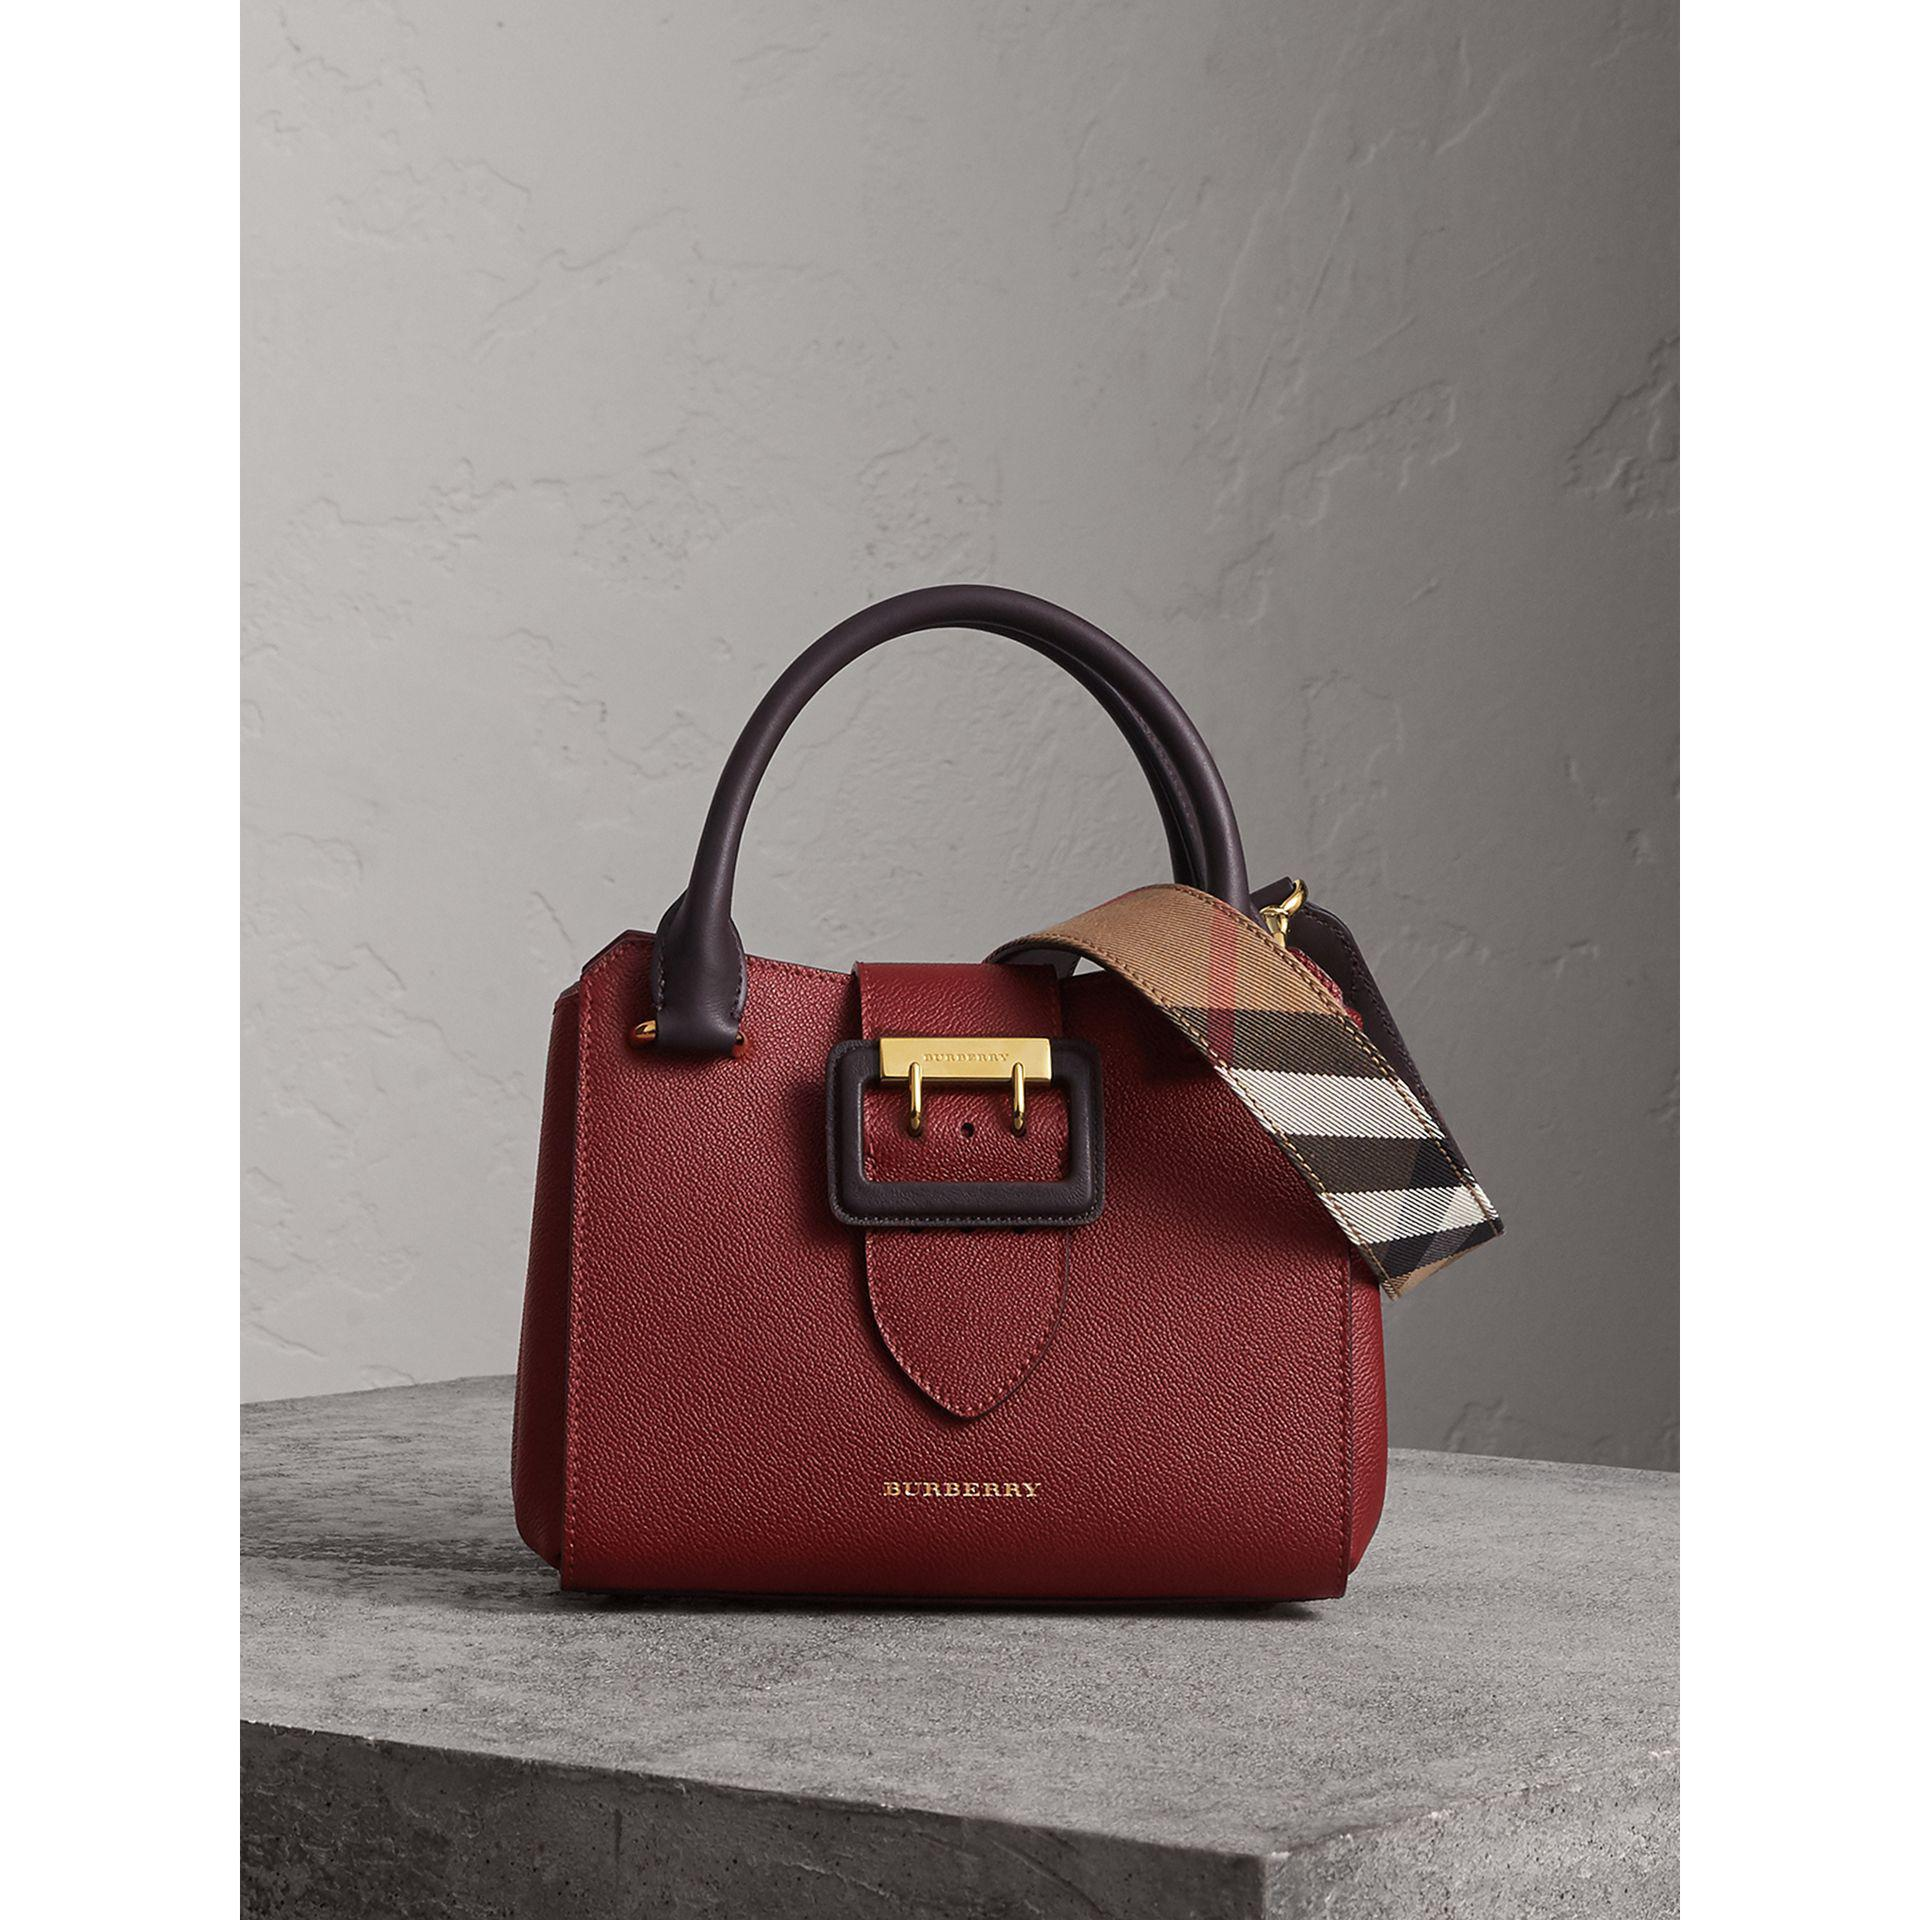 7e825b8b5f89 Burberry The Small Buckle Tote In Two-tone Leather - Lyst